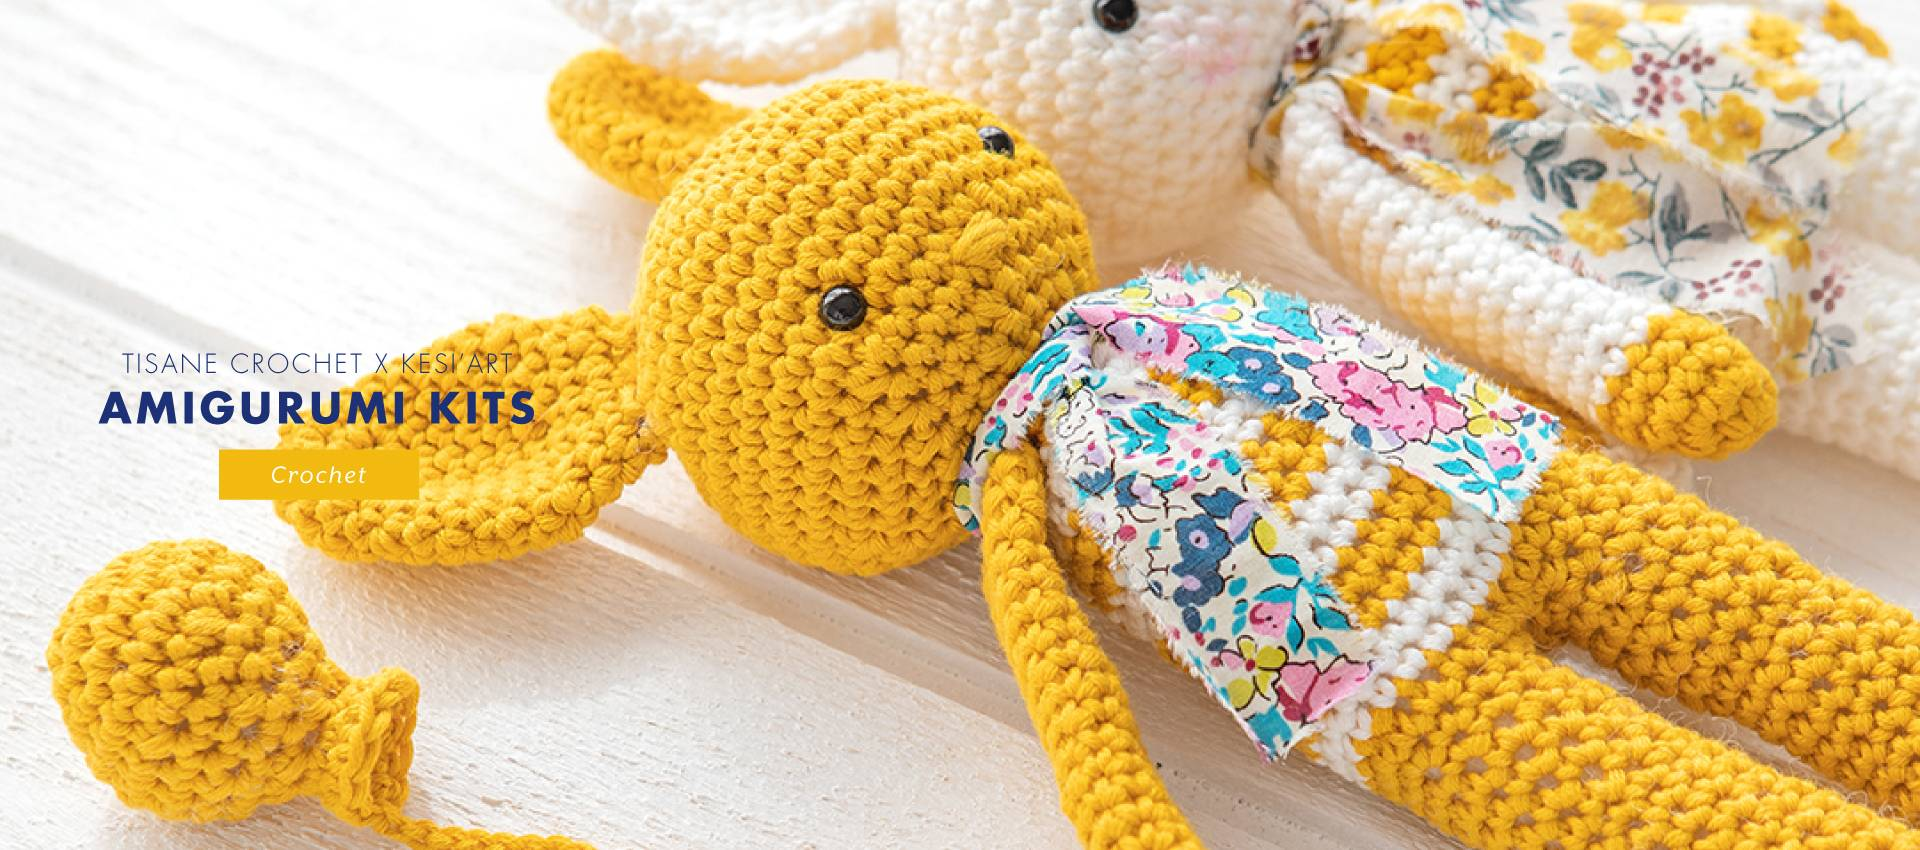 COLLAB 'TISANE CROCHET X KESI'ART: 3 adorable amigurimi crochet kits to crochet!